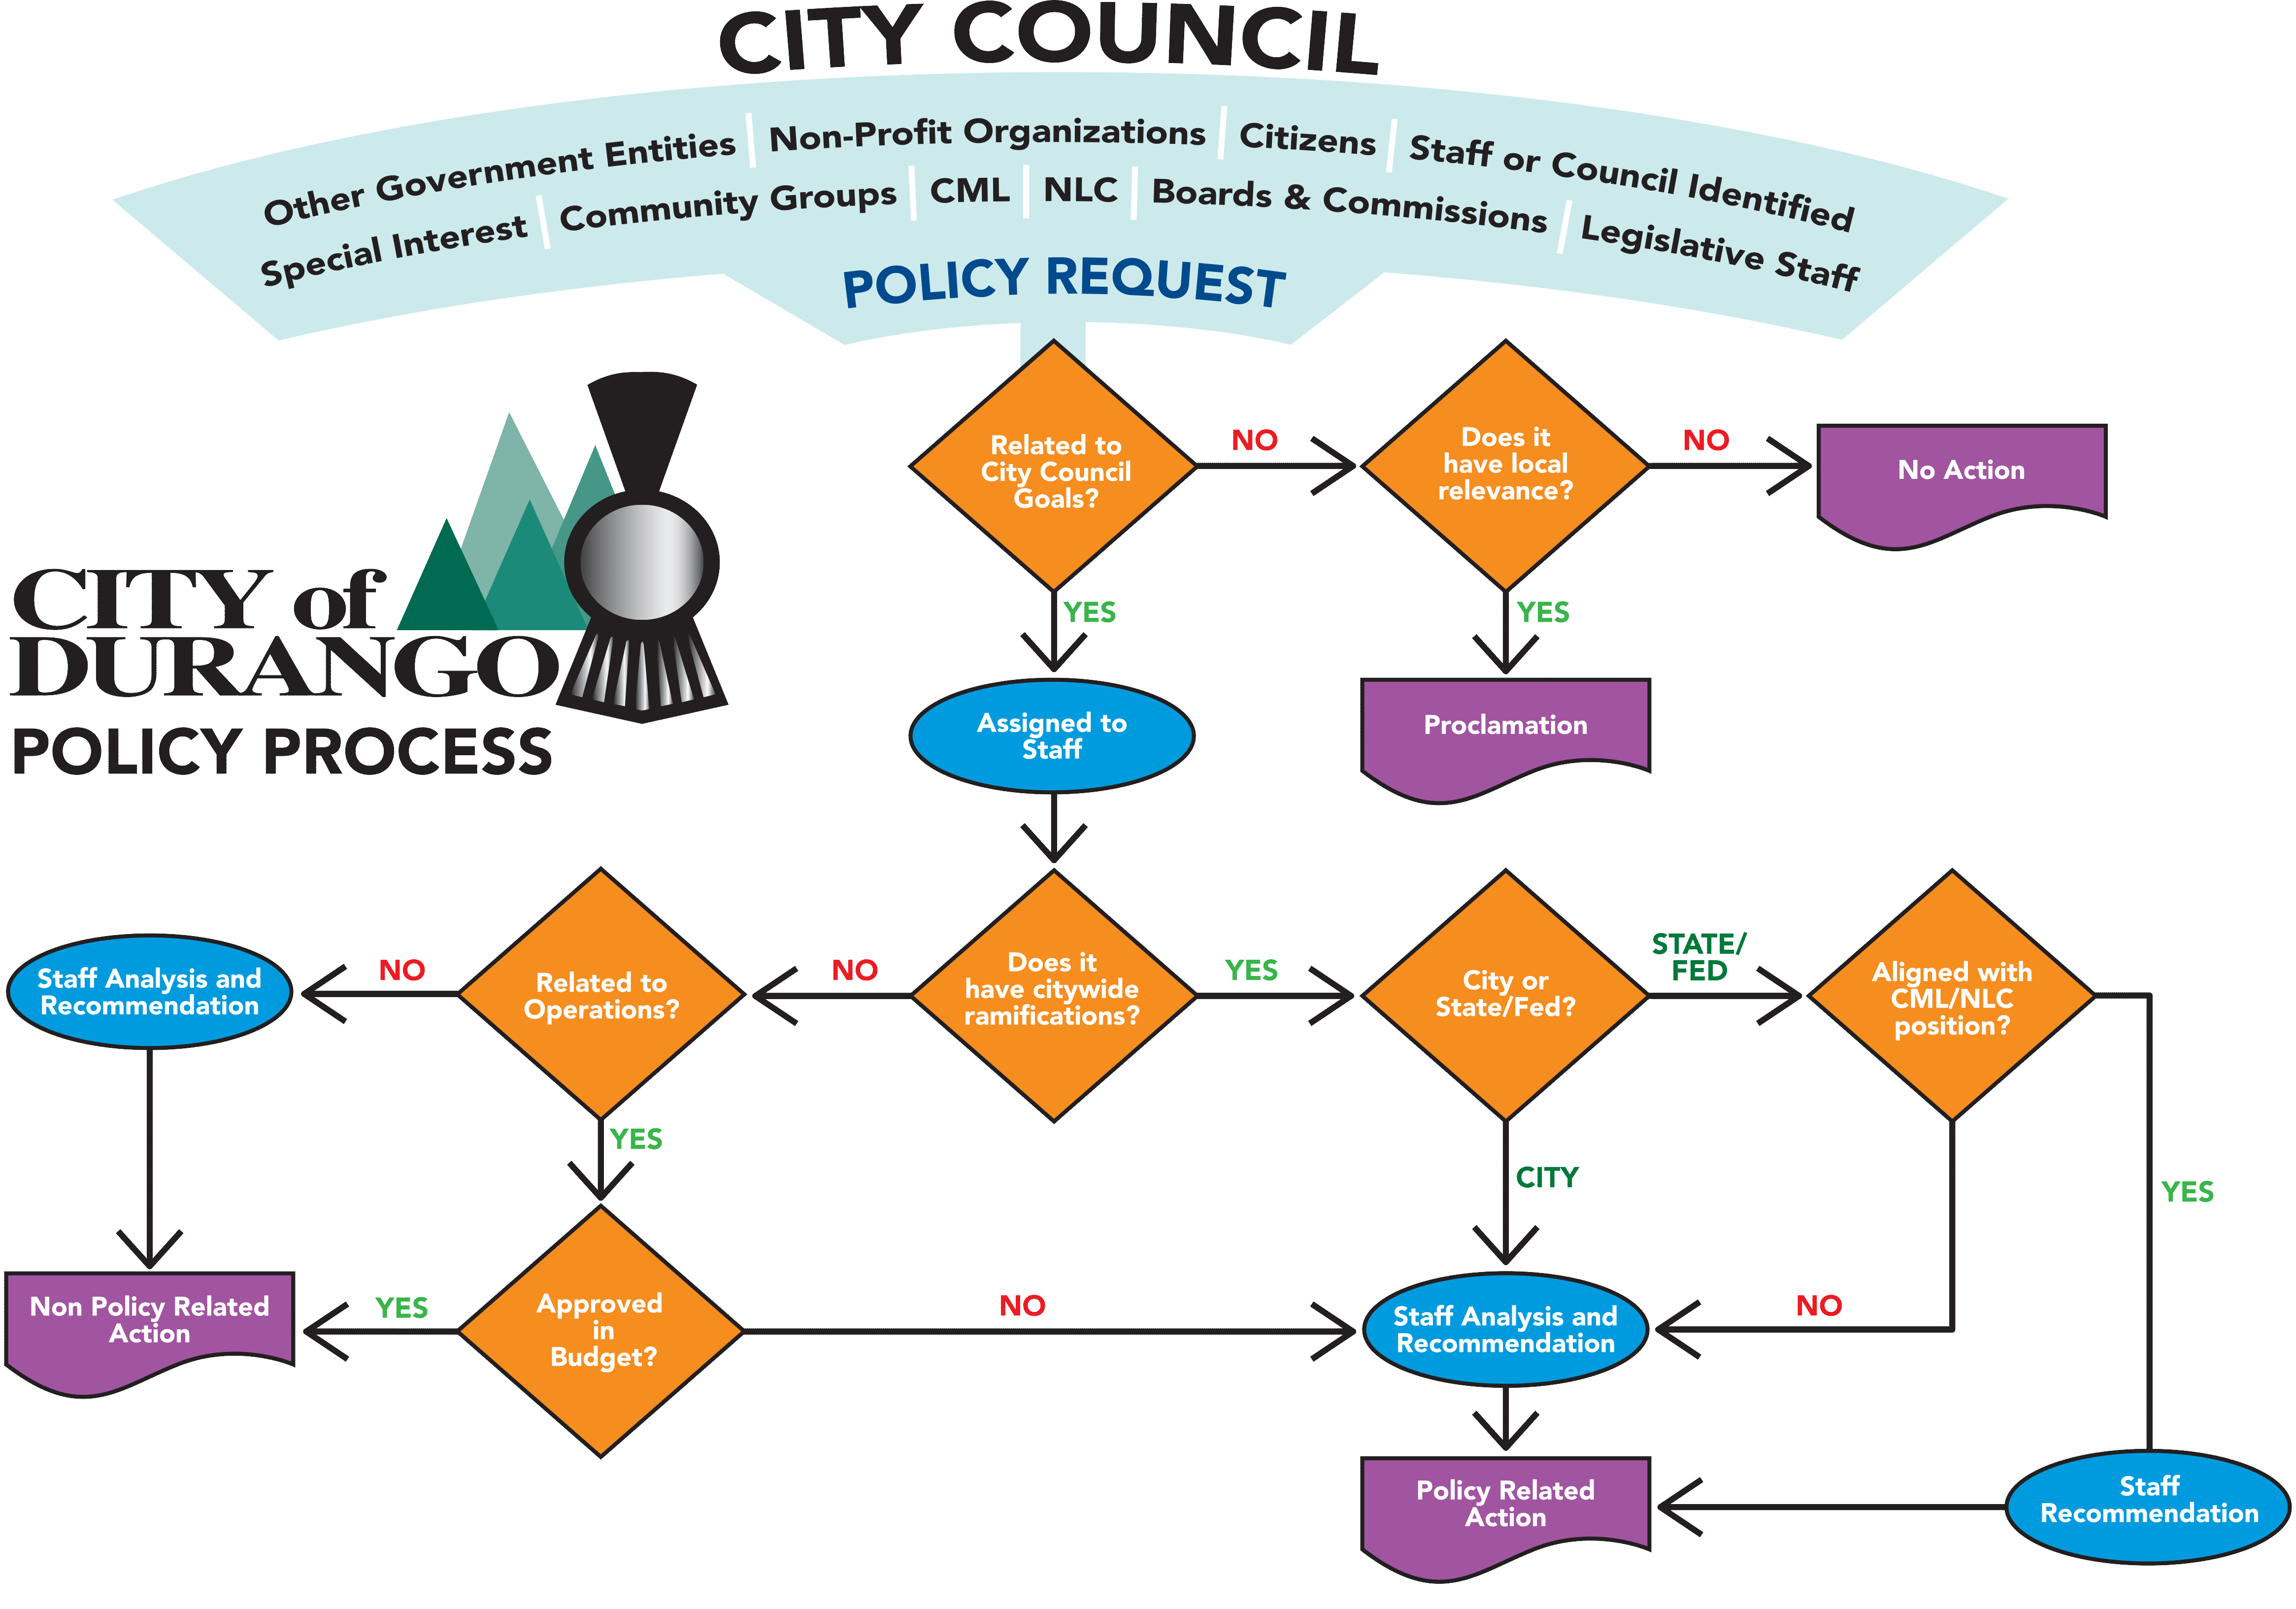 City Council Infographic View Larger Image Opens in new window